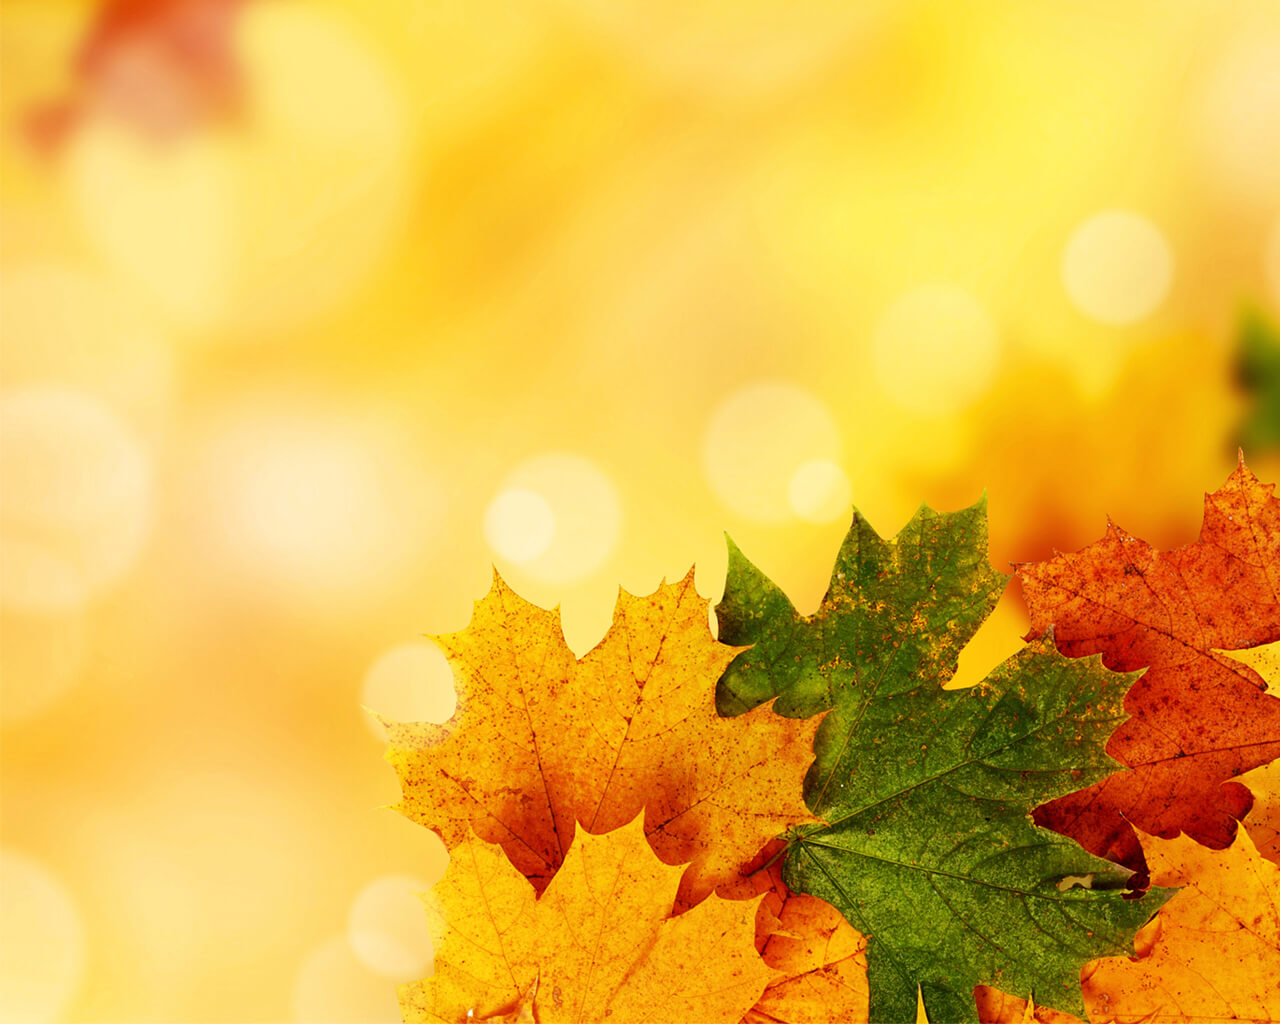 Yellow Autumn Backgrounds For Powerpoint - Nature Ppt Templates Throughout Free Fall Powerpoint Templates